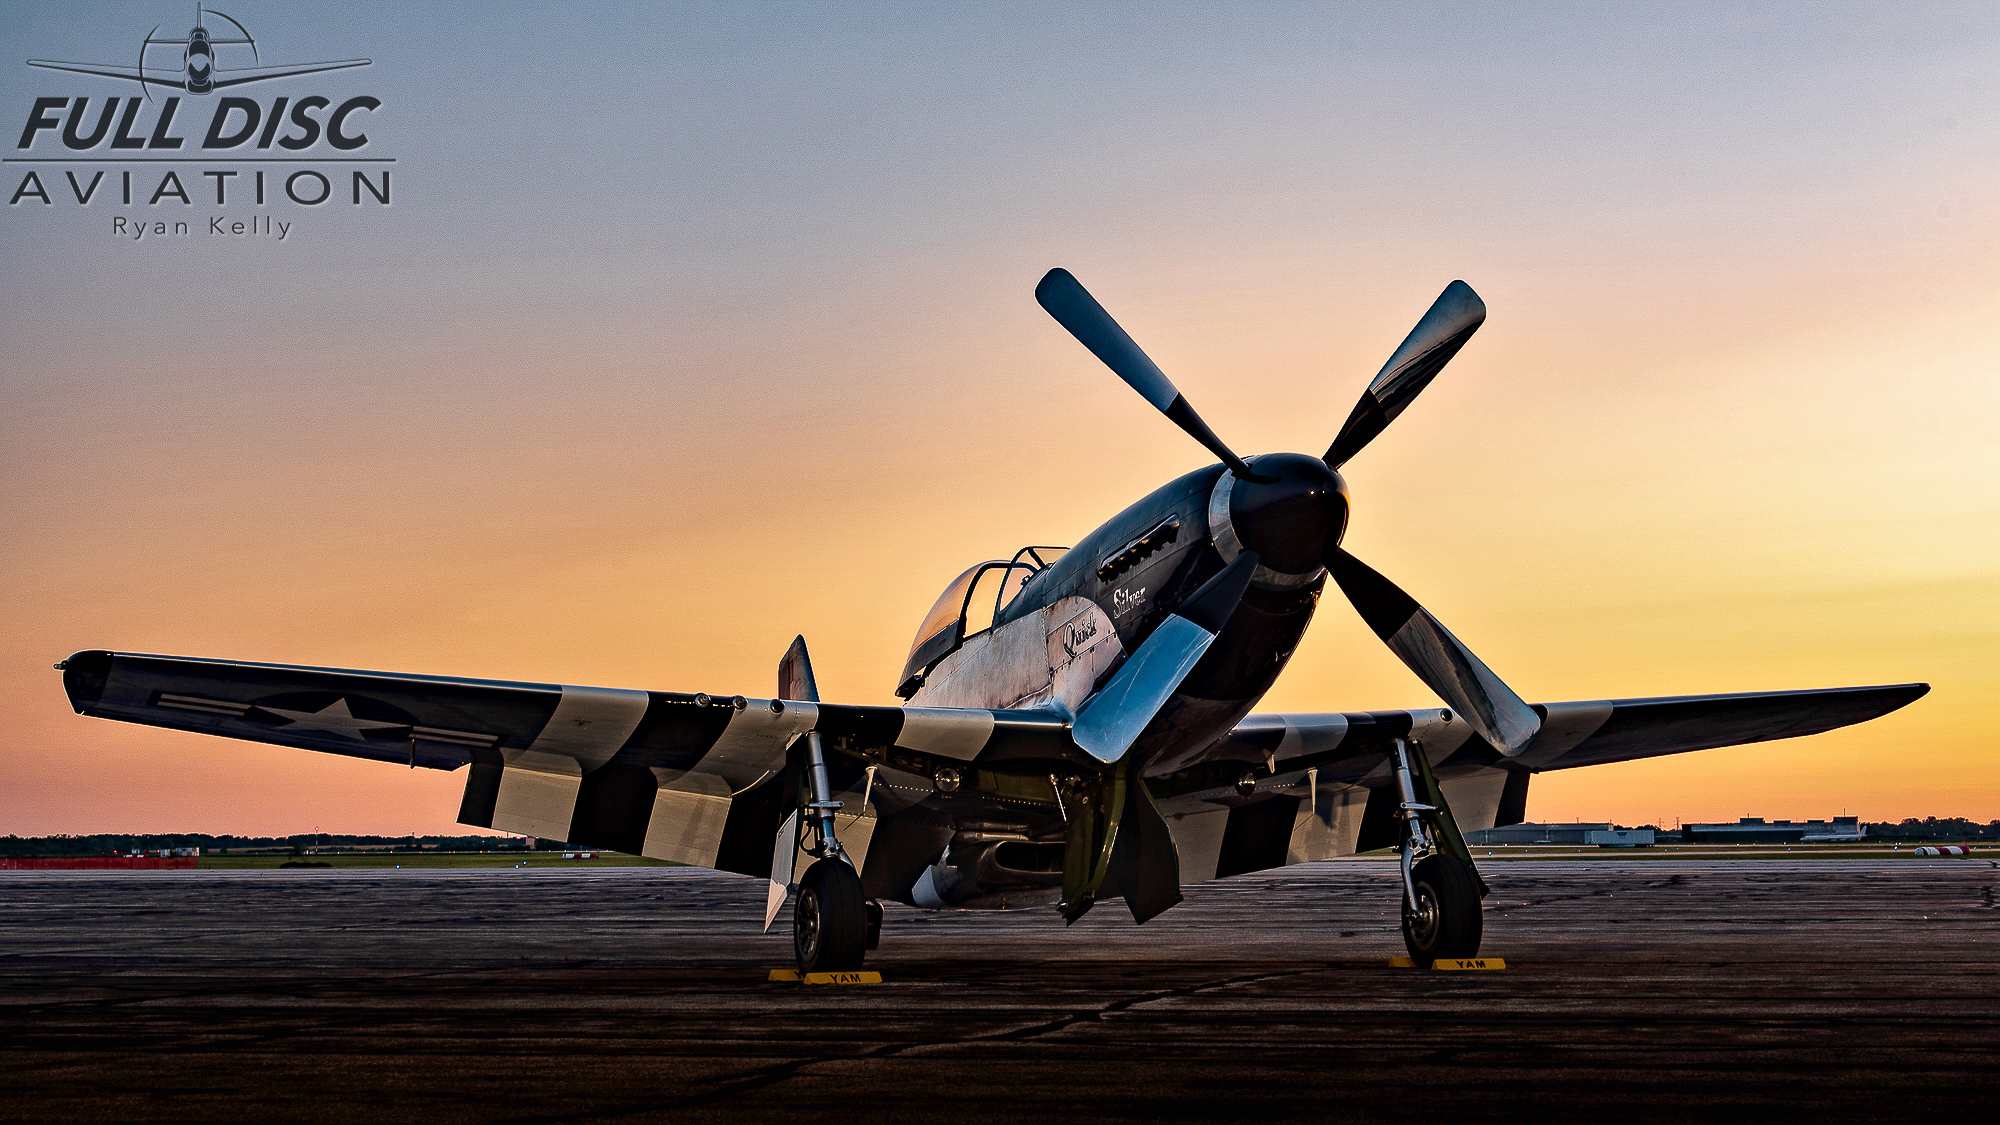 ClassOf45_FullDiscAviation_RyanKelly_August 01, 2019_15.jpg